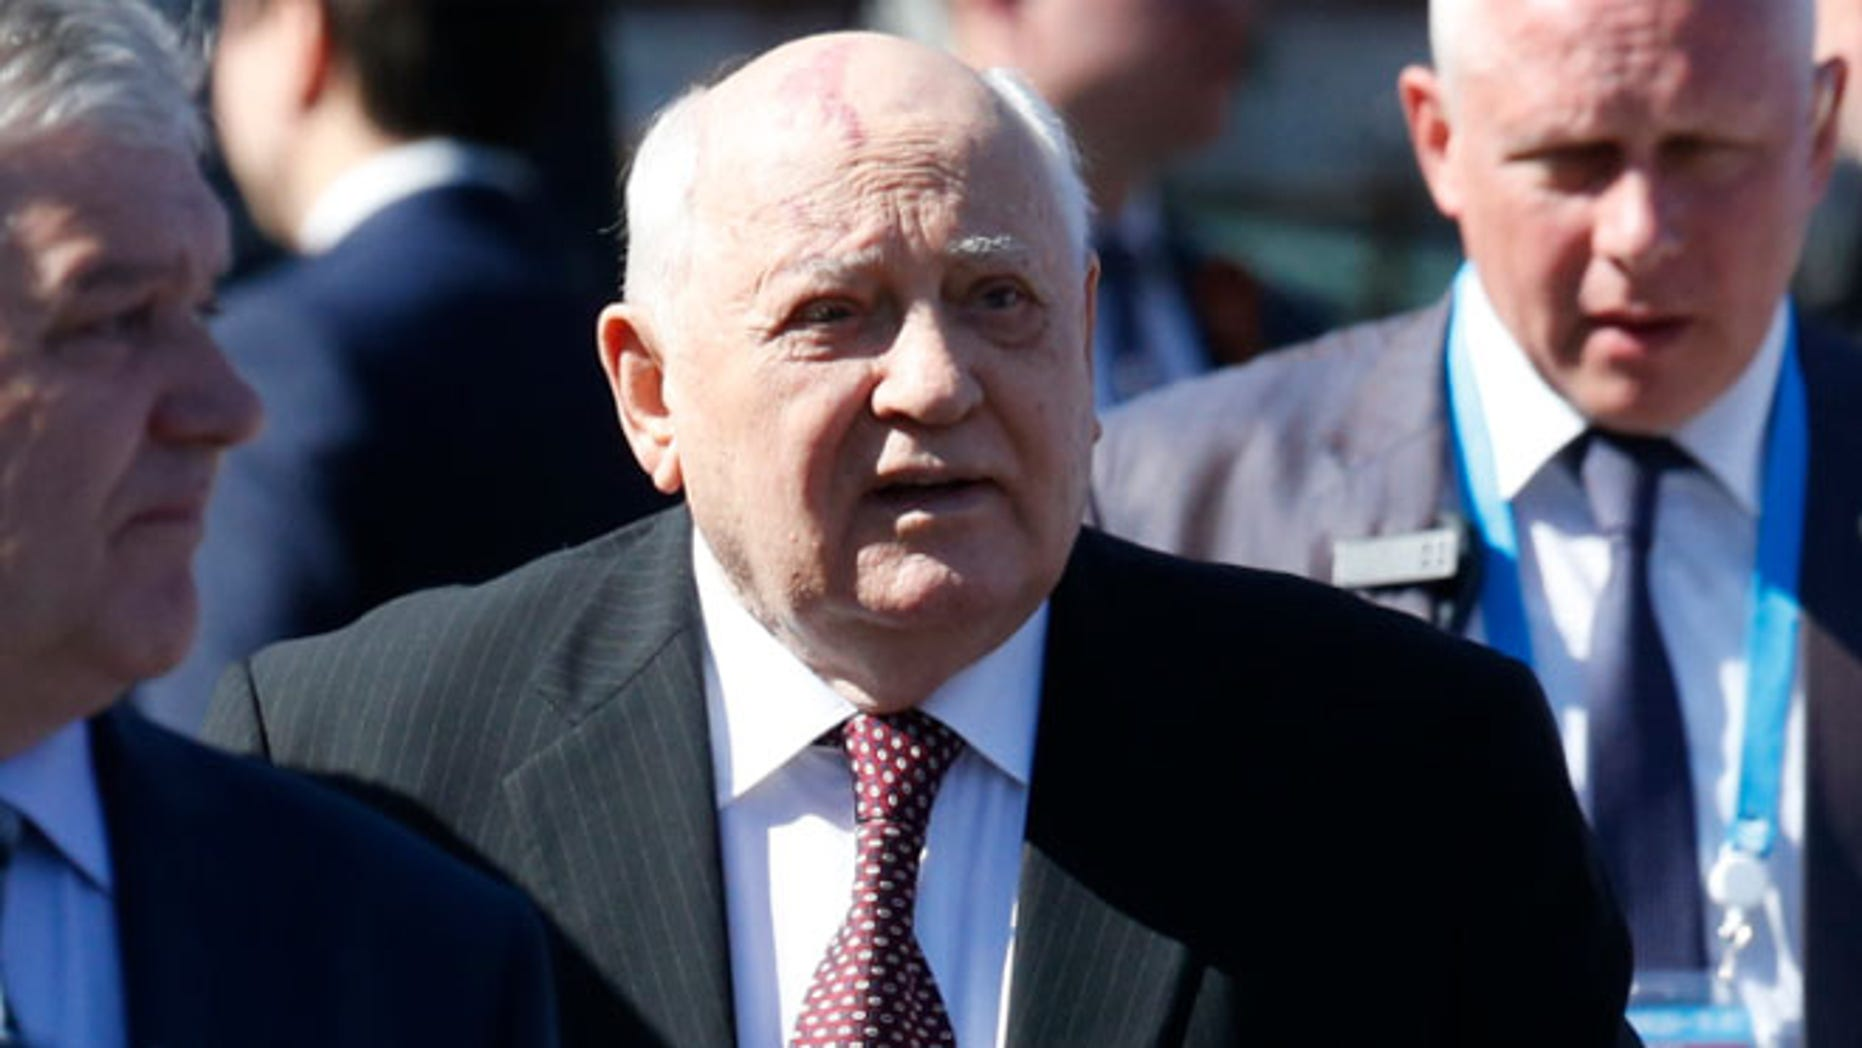 Former Soviet president Gorbachev issued a warning in Time magazine about the state of international politics.